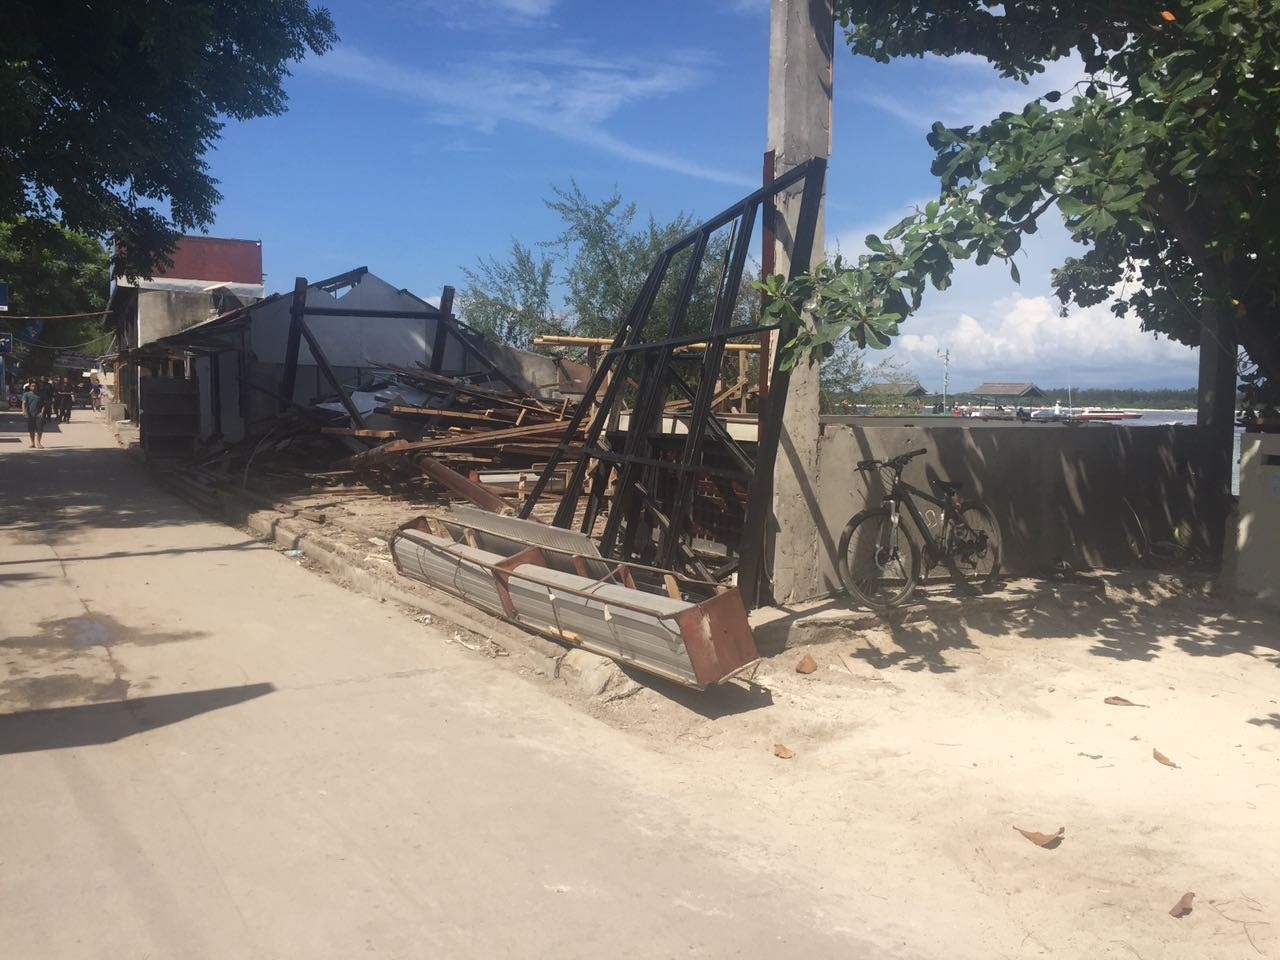 Gili-trawangan-demolition-2